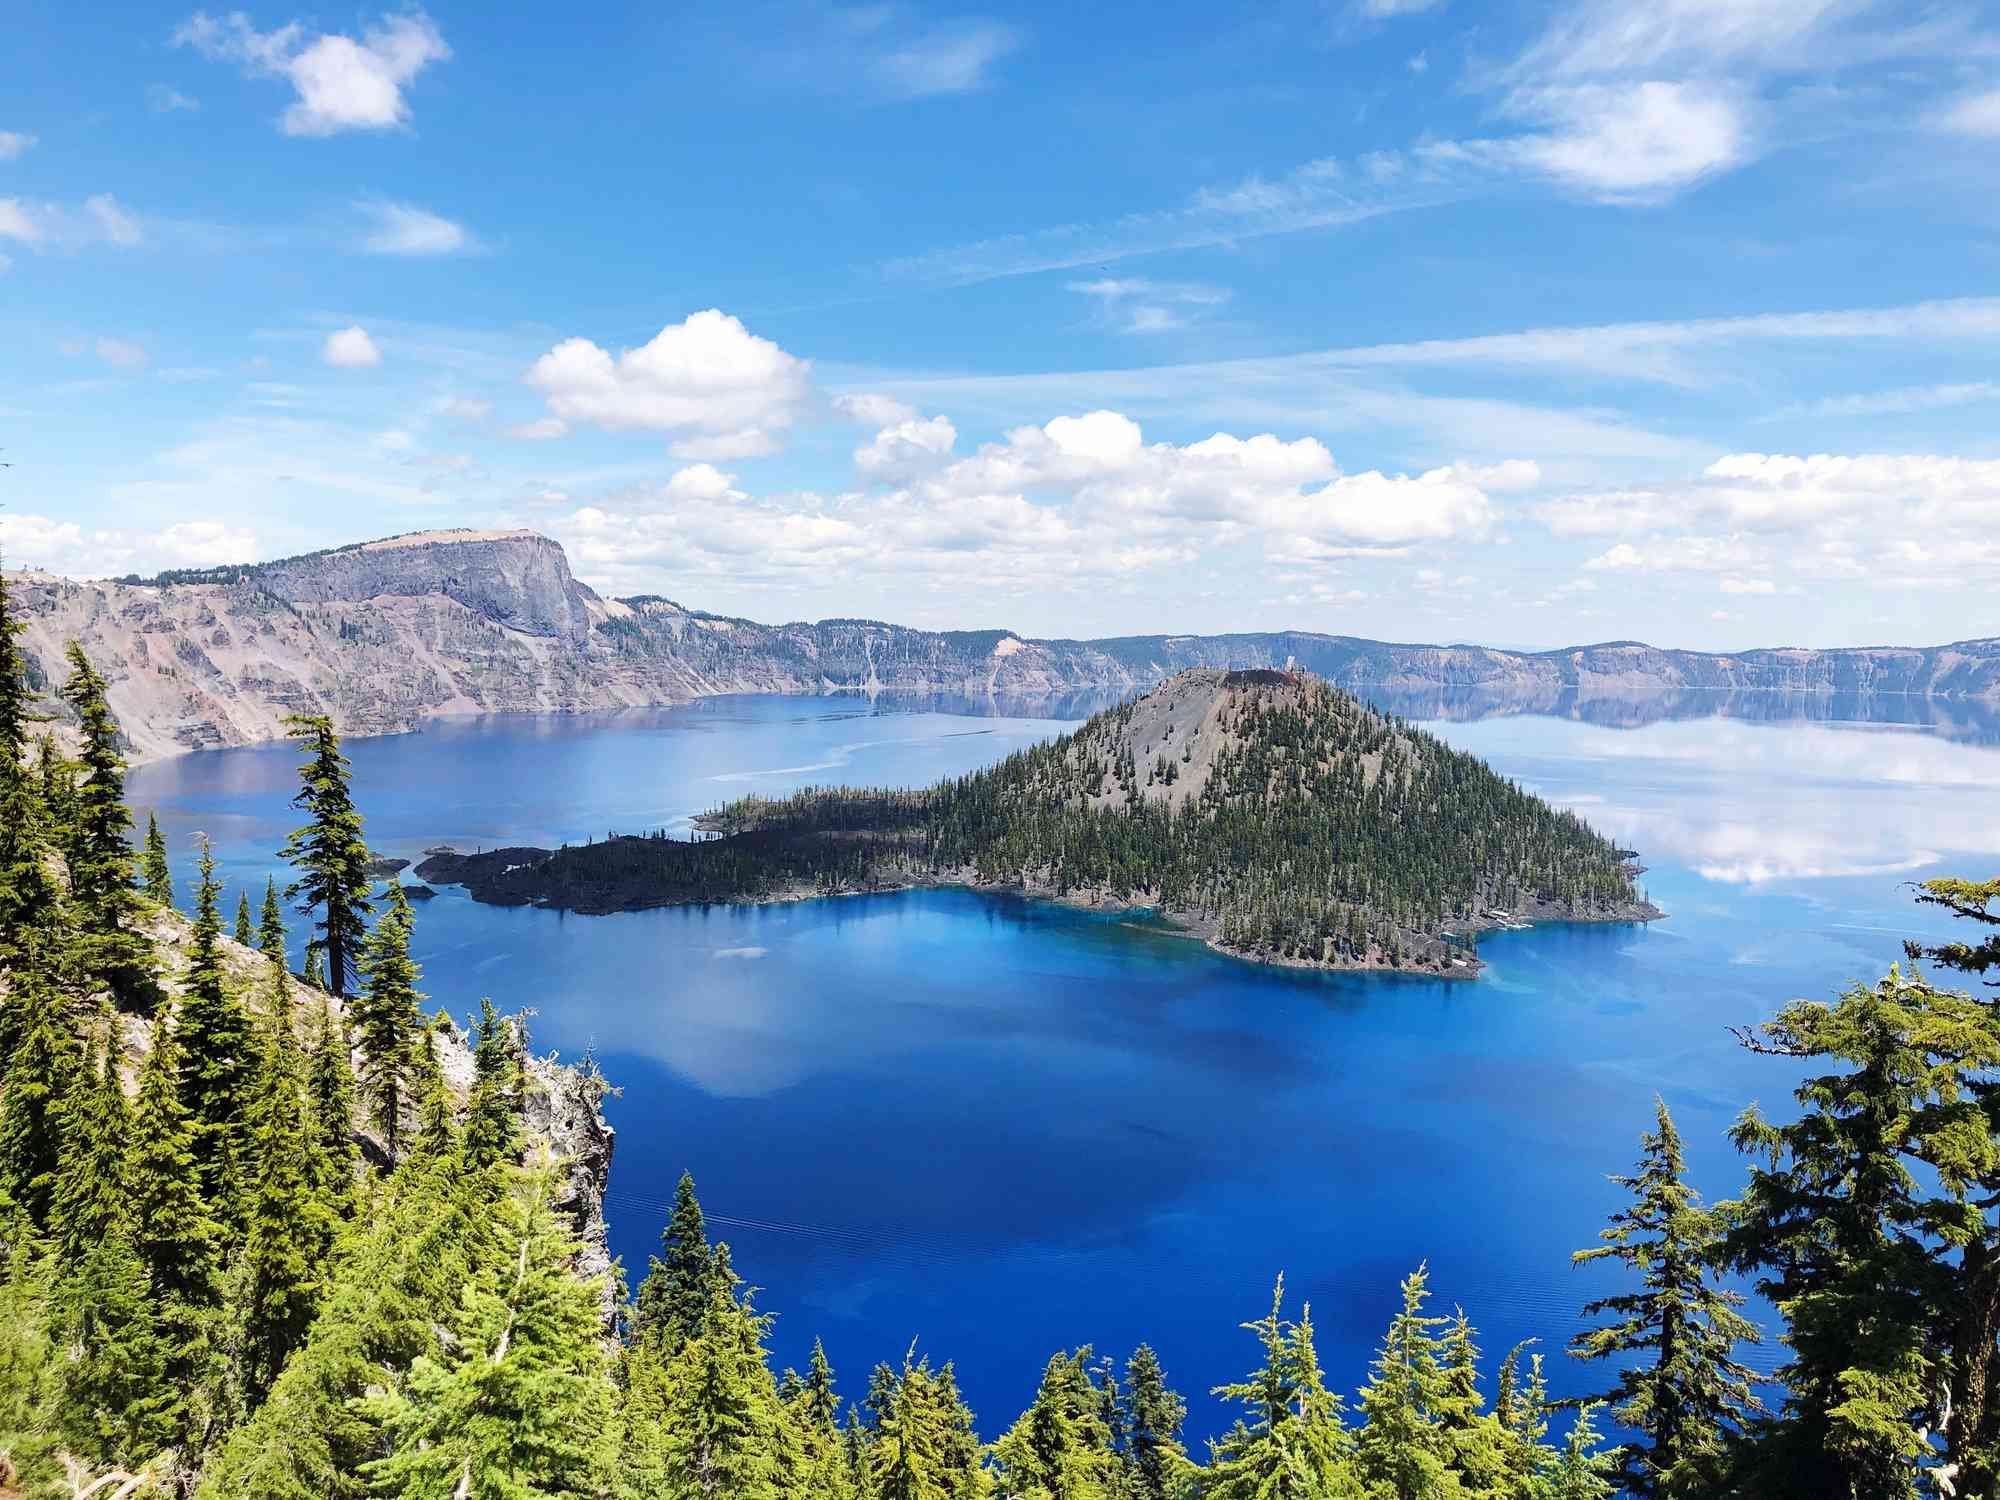 An aerial view of Oregon's crater lake.